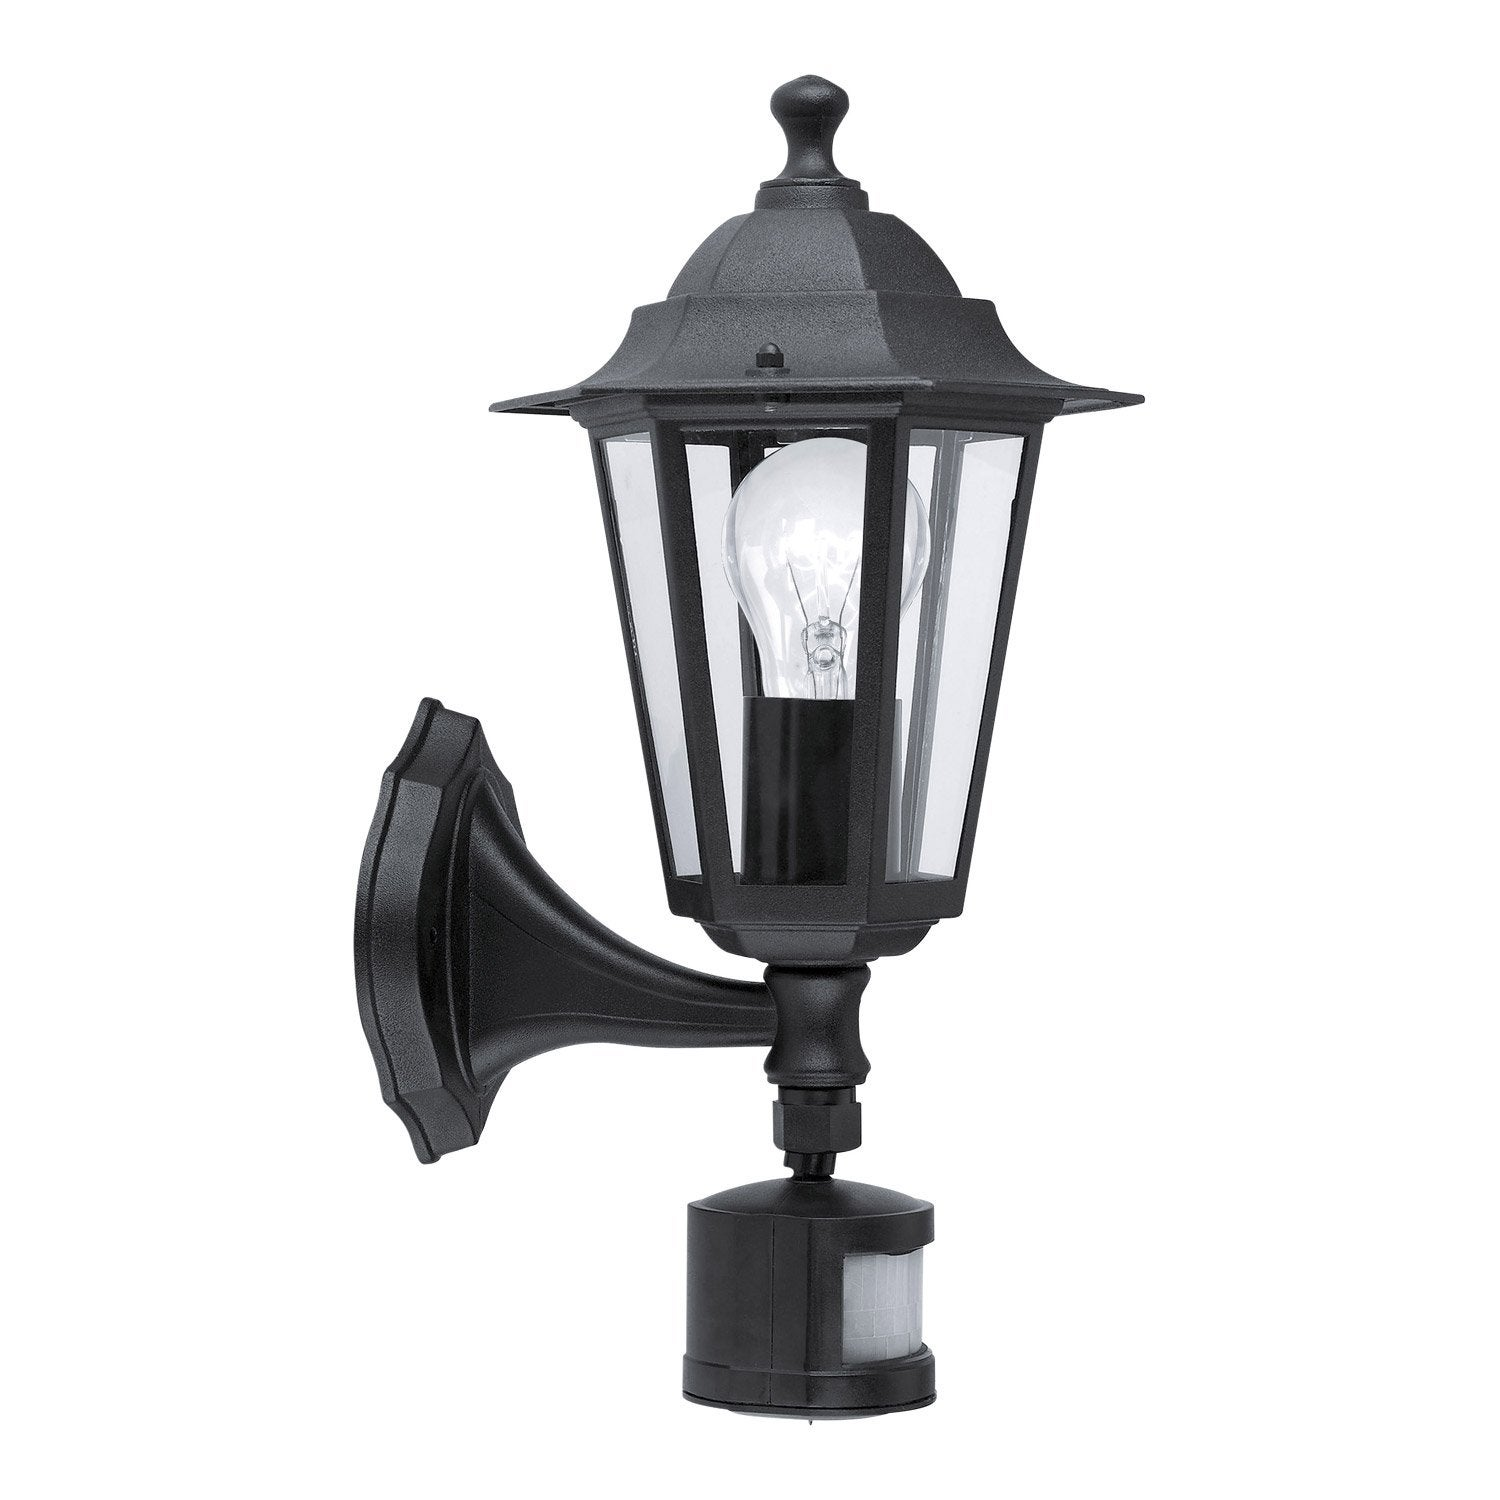 Applique 224 D 233 Tection Ext 233 Rieure Laterna E27 60 W Noir